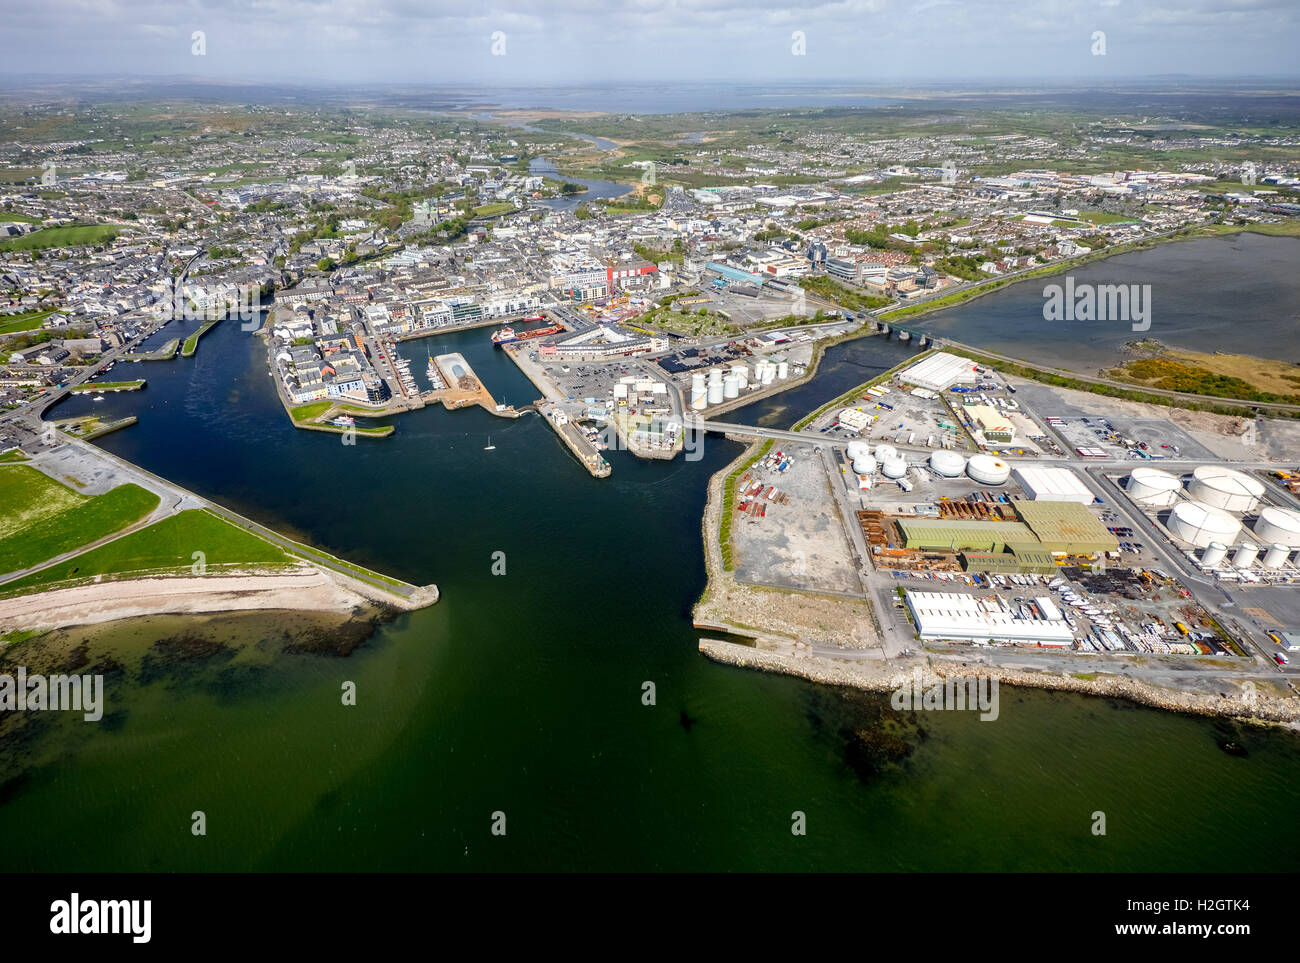 View of town and harbour, docks and Business Enterprise Park, Galway, County Clare, Ireland - Stock Image